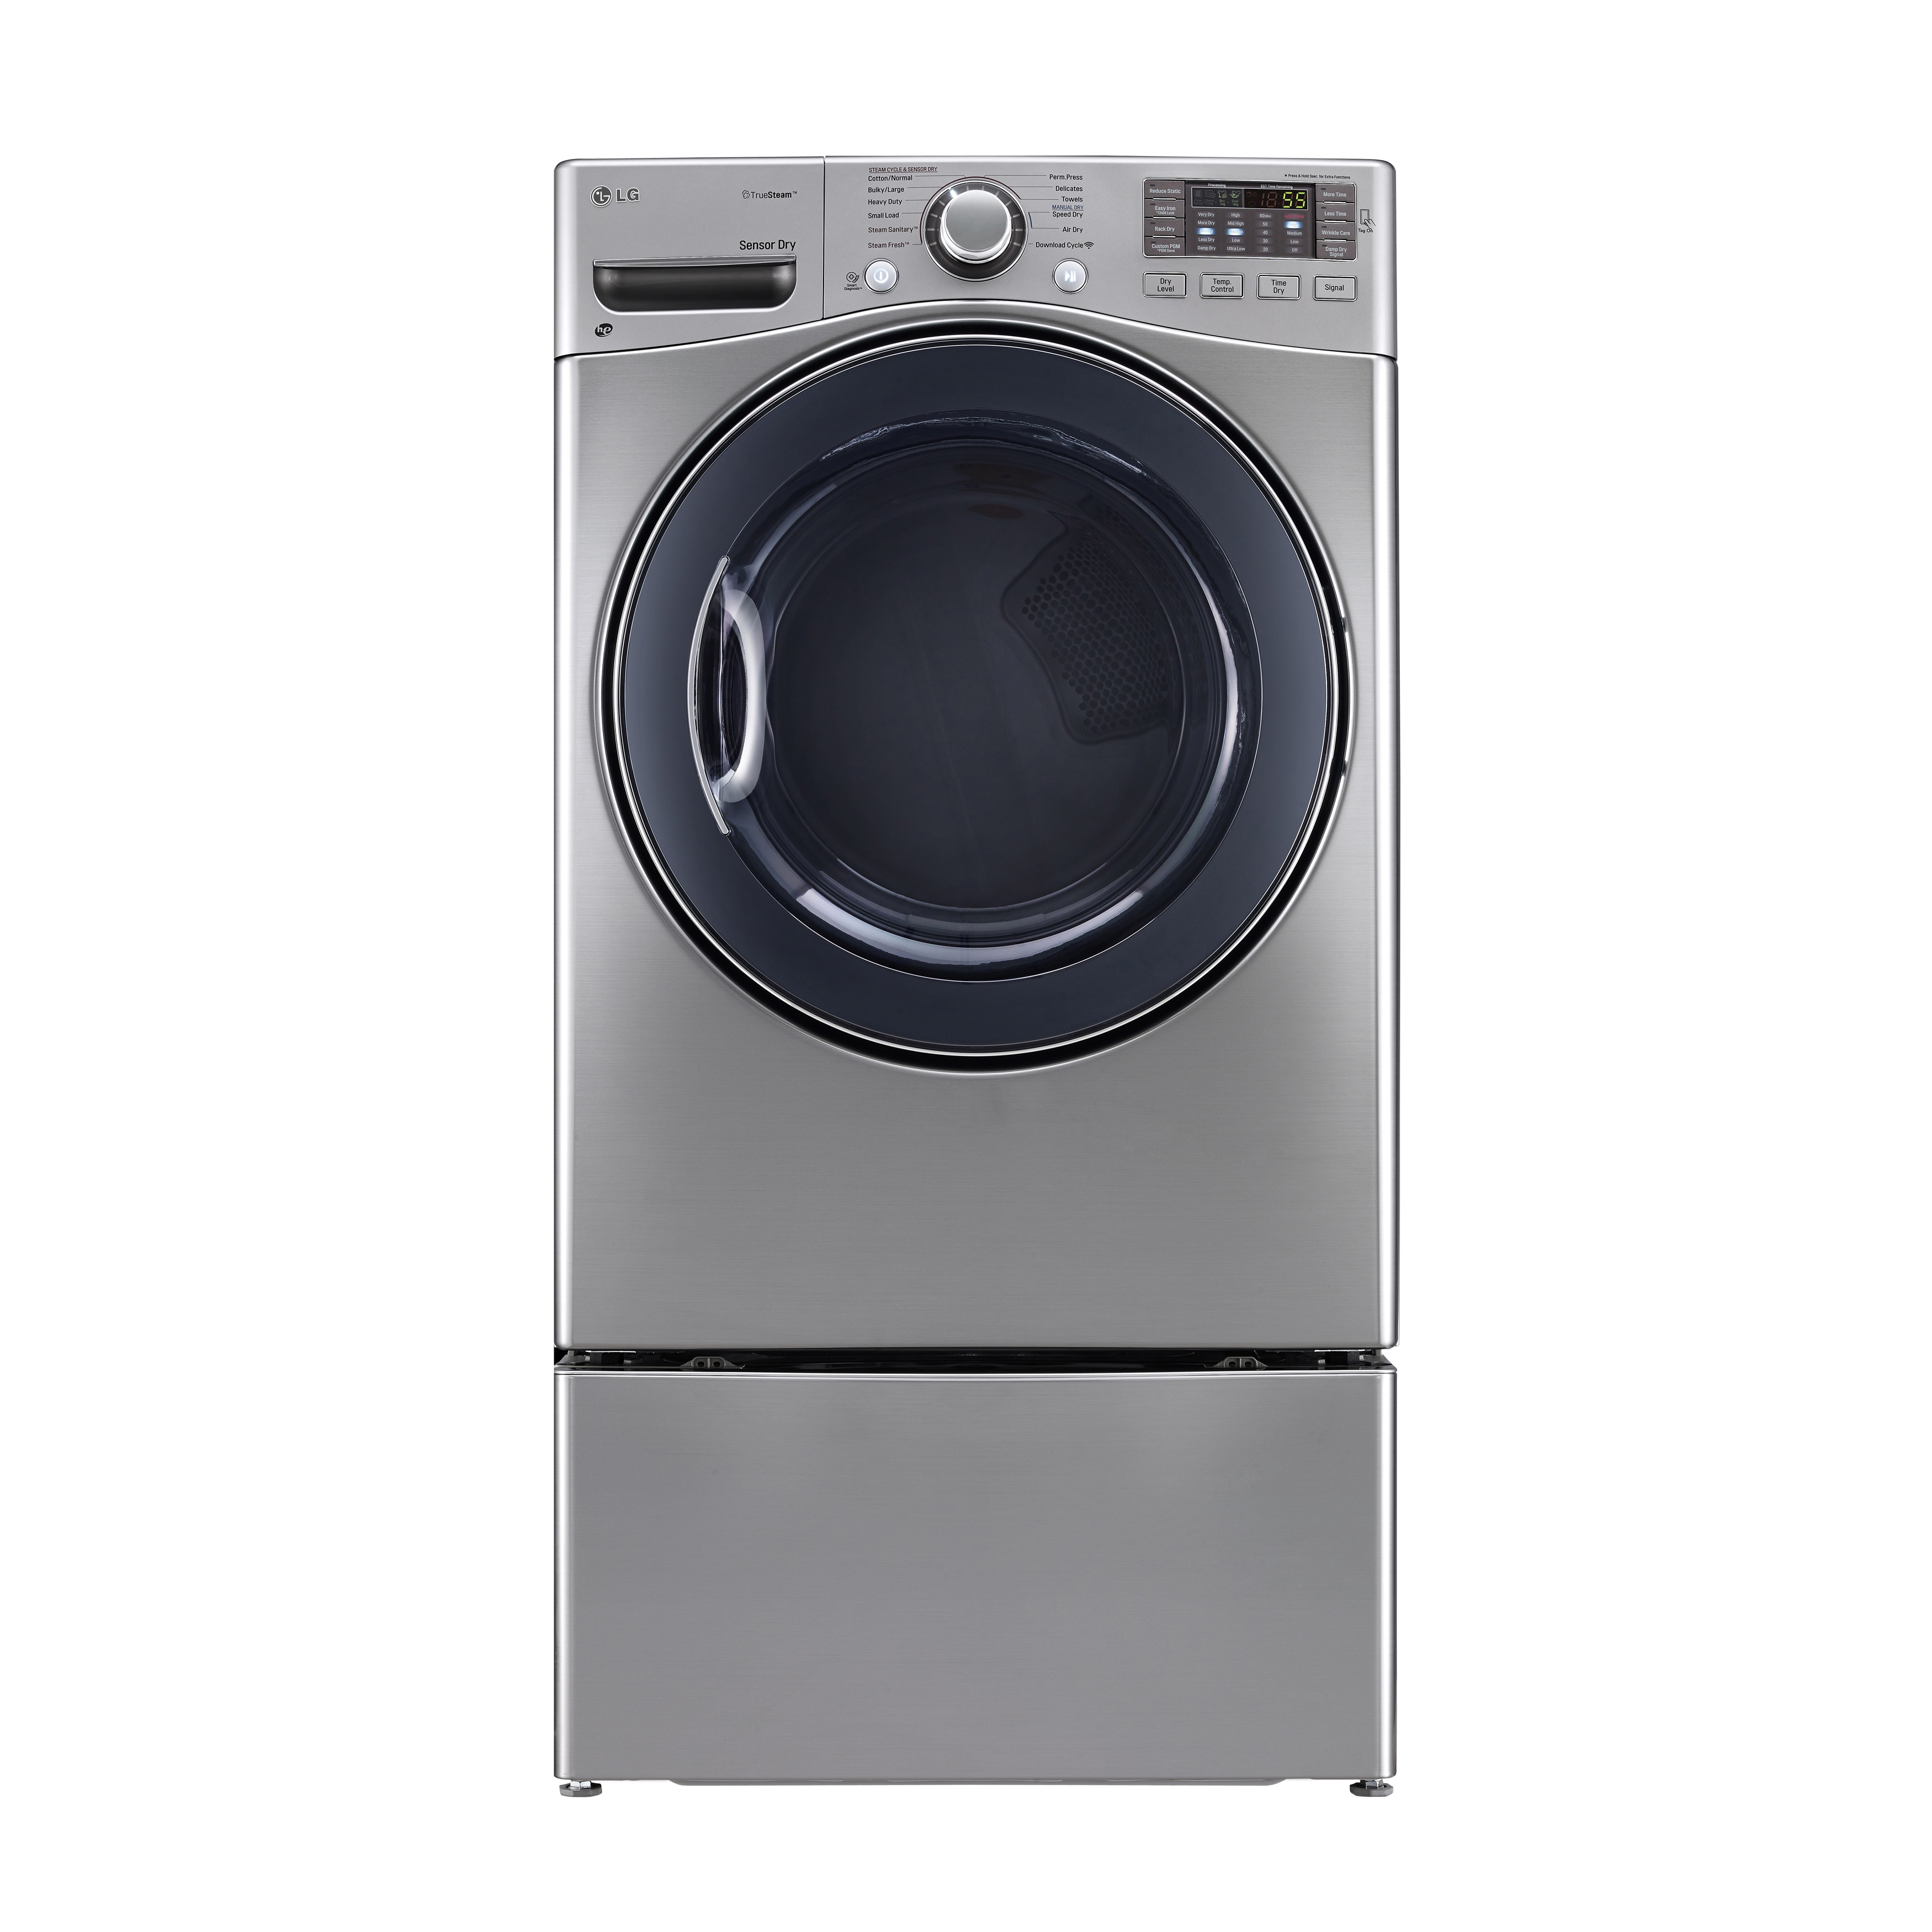 LG DLGX3571V 7 4-cubic Feet Ultra Large Capacity SteamDryer with NFC Tag On  in Graphite Steel